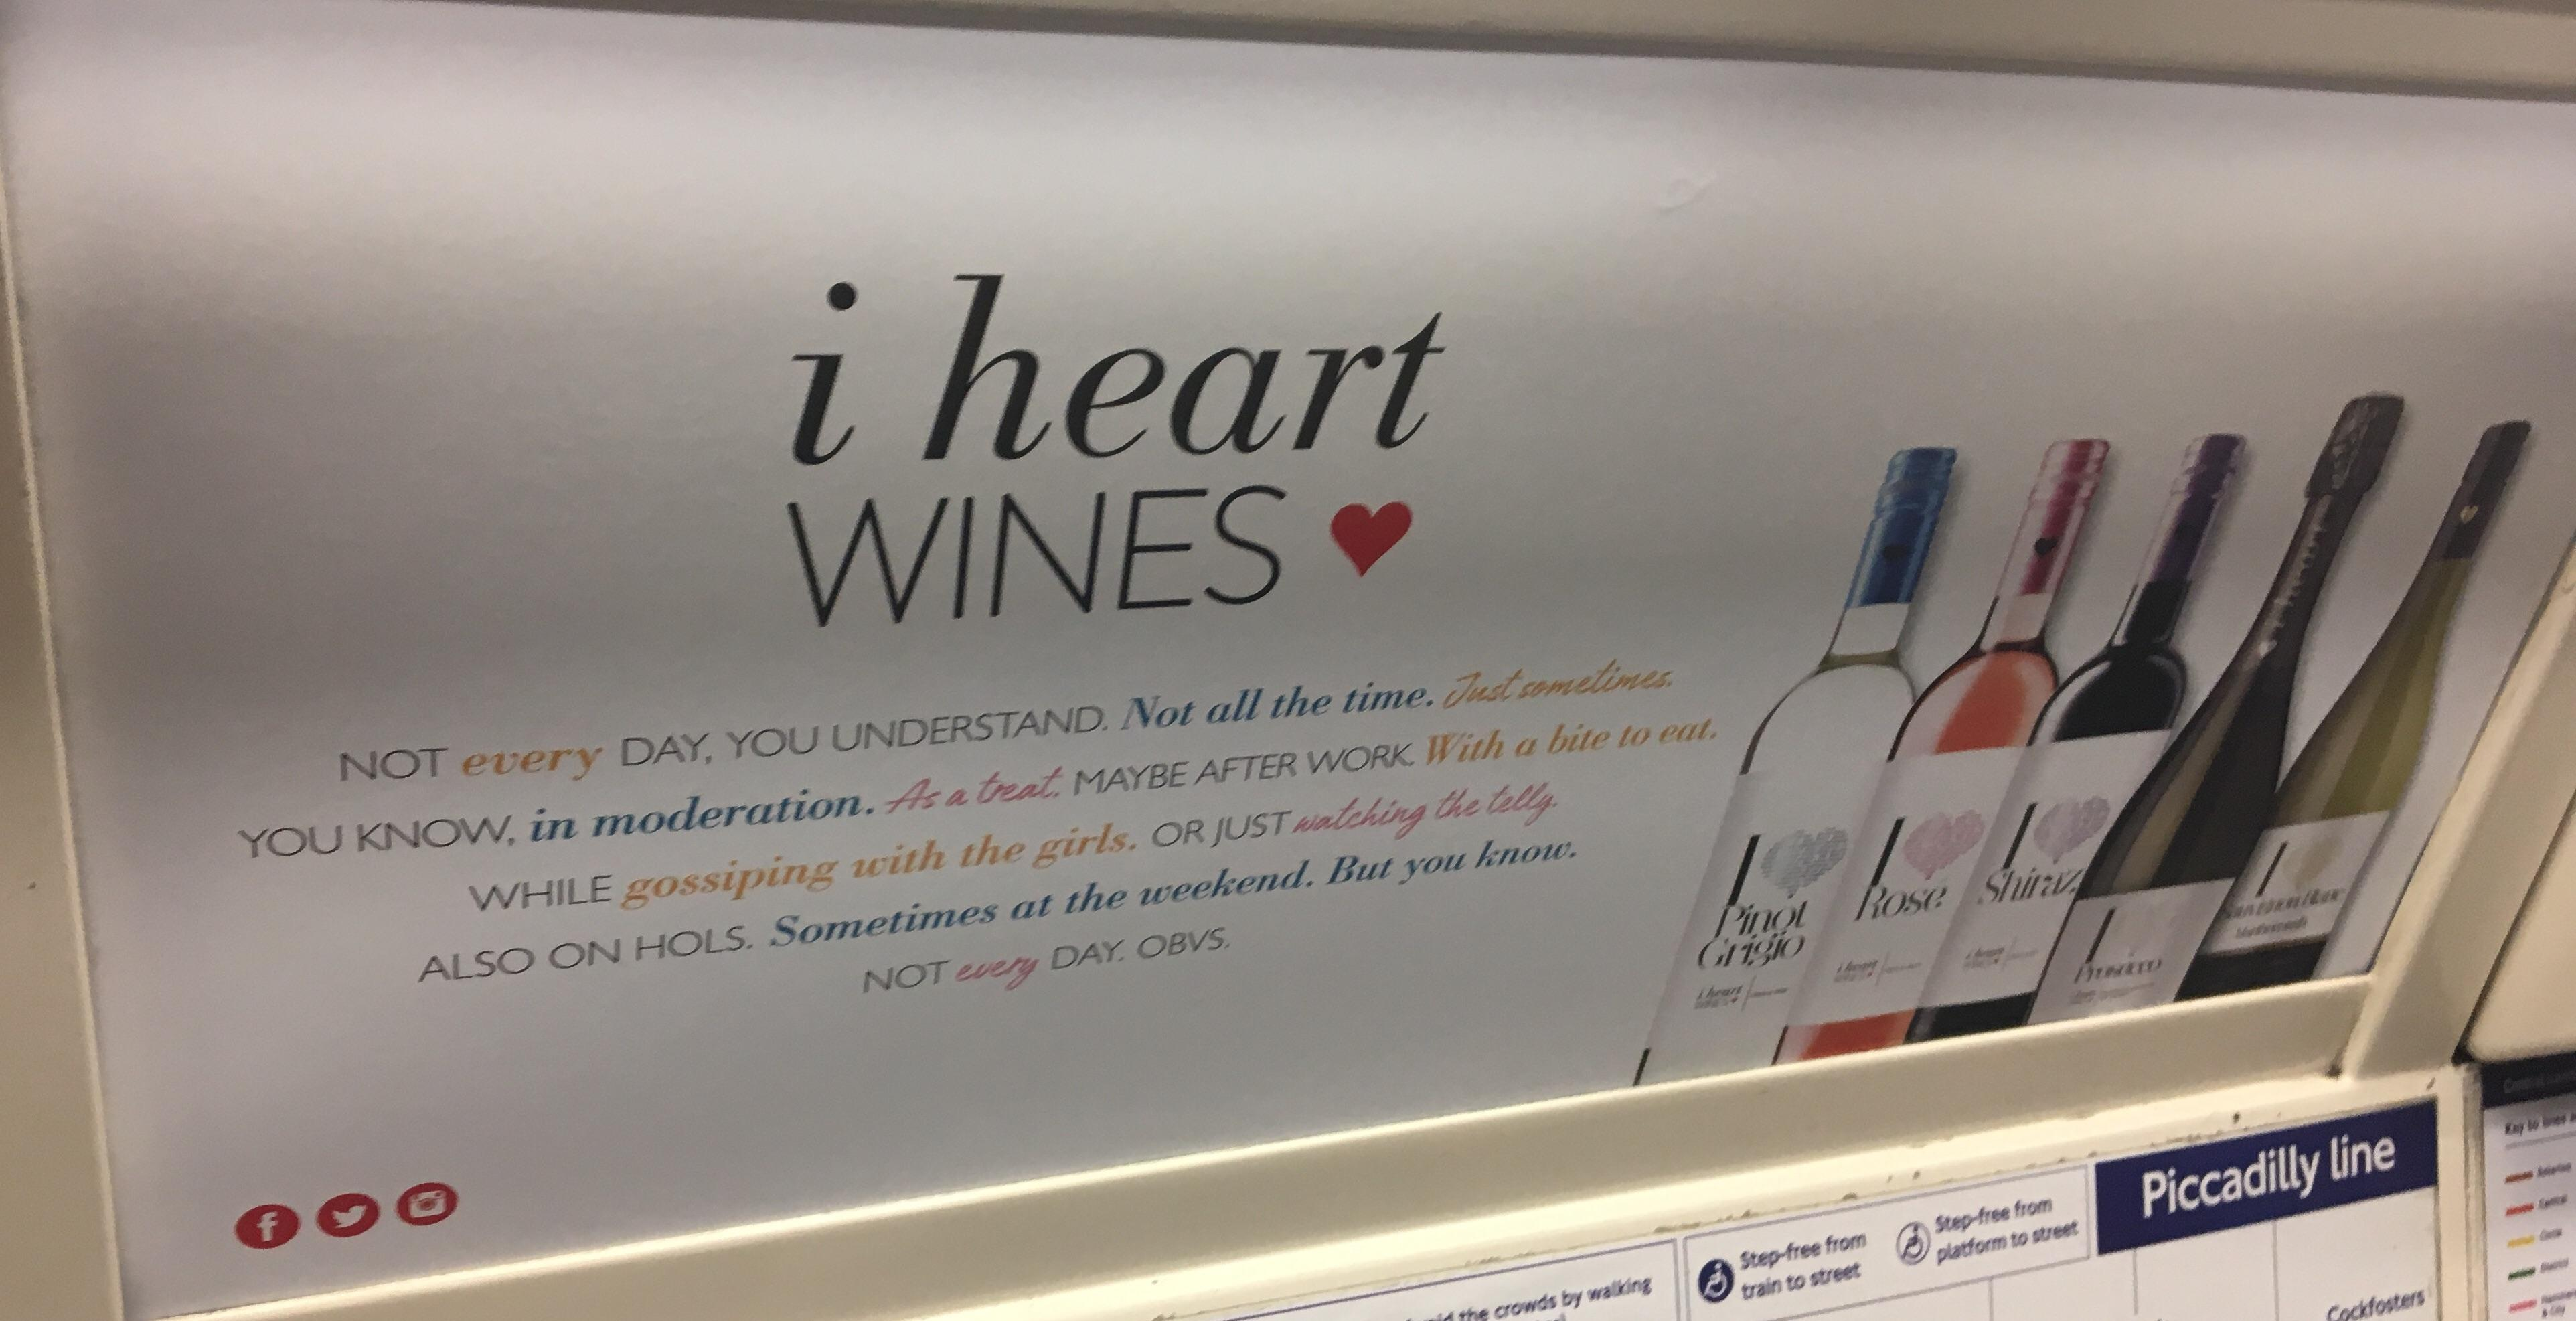 I heart wines ad - London tube